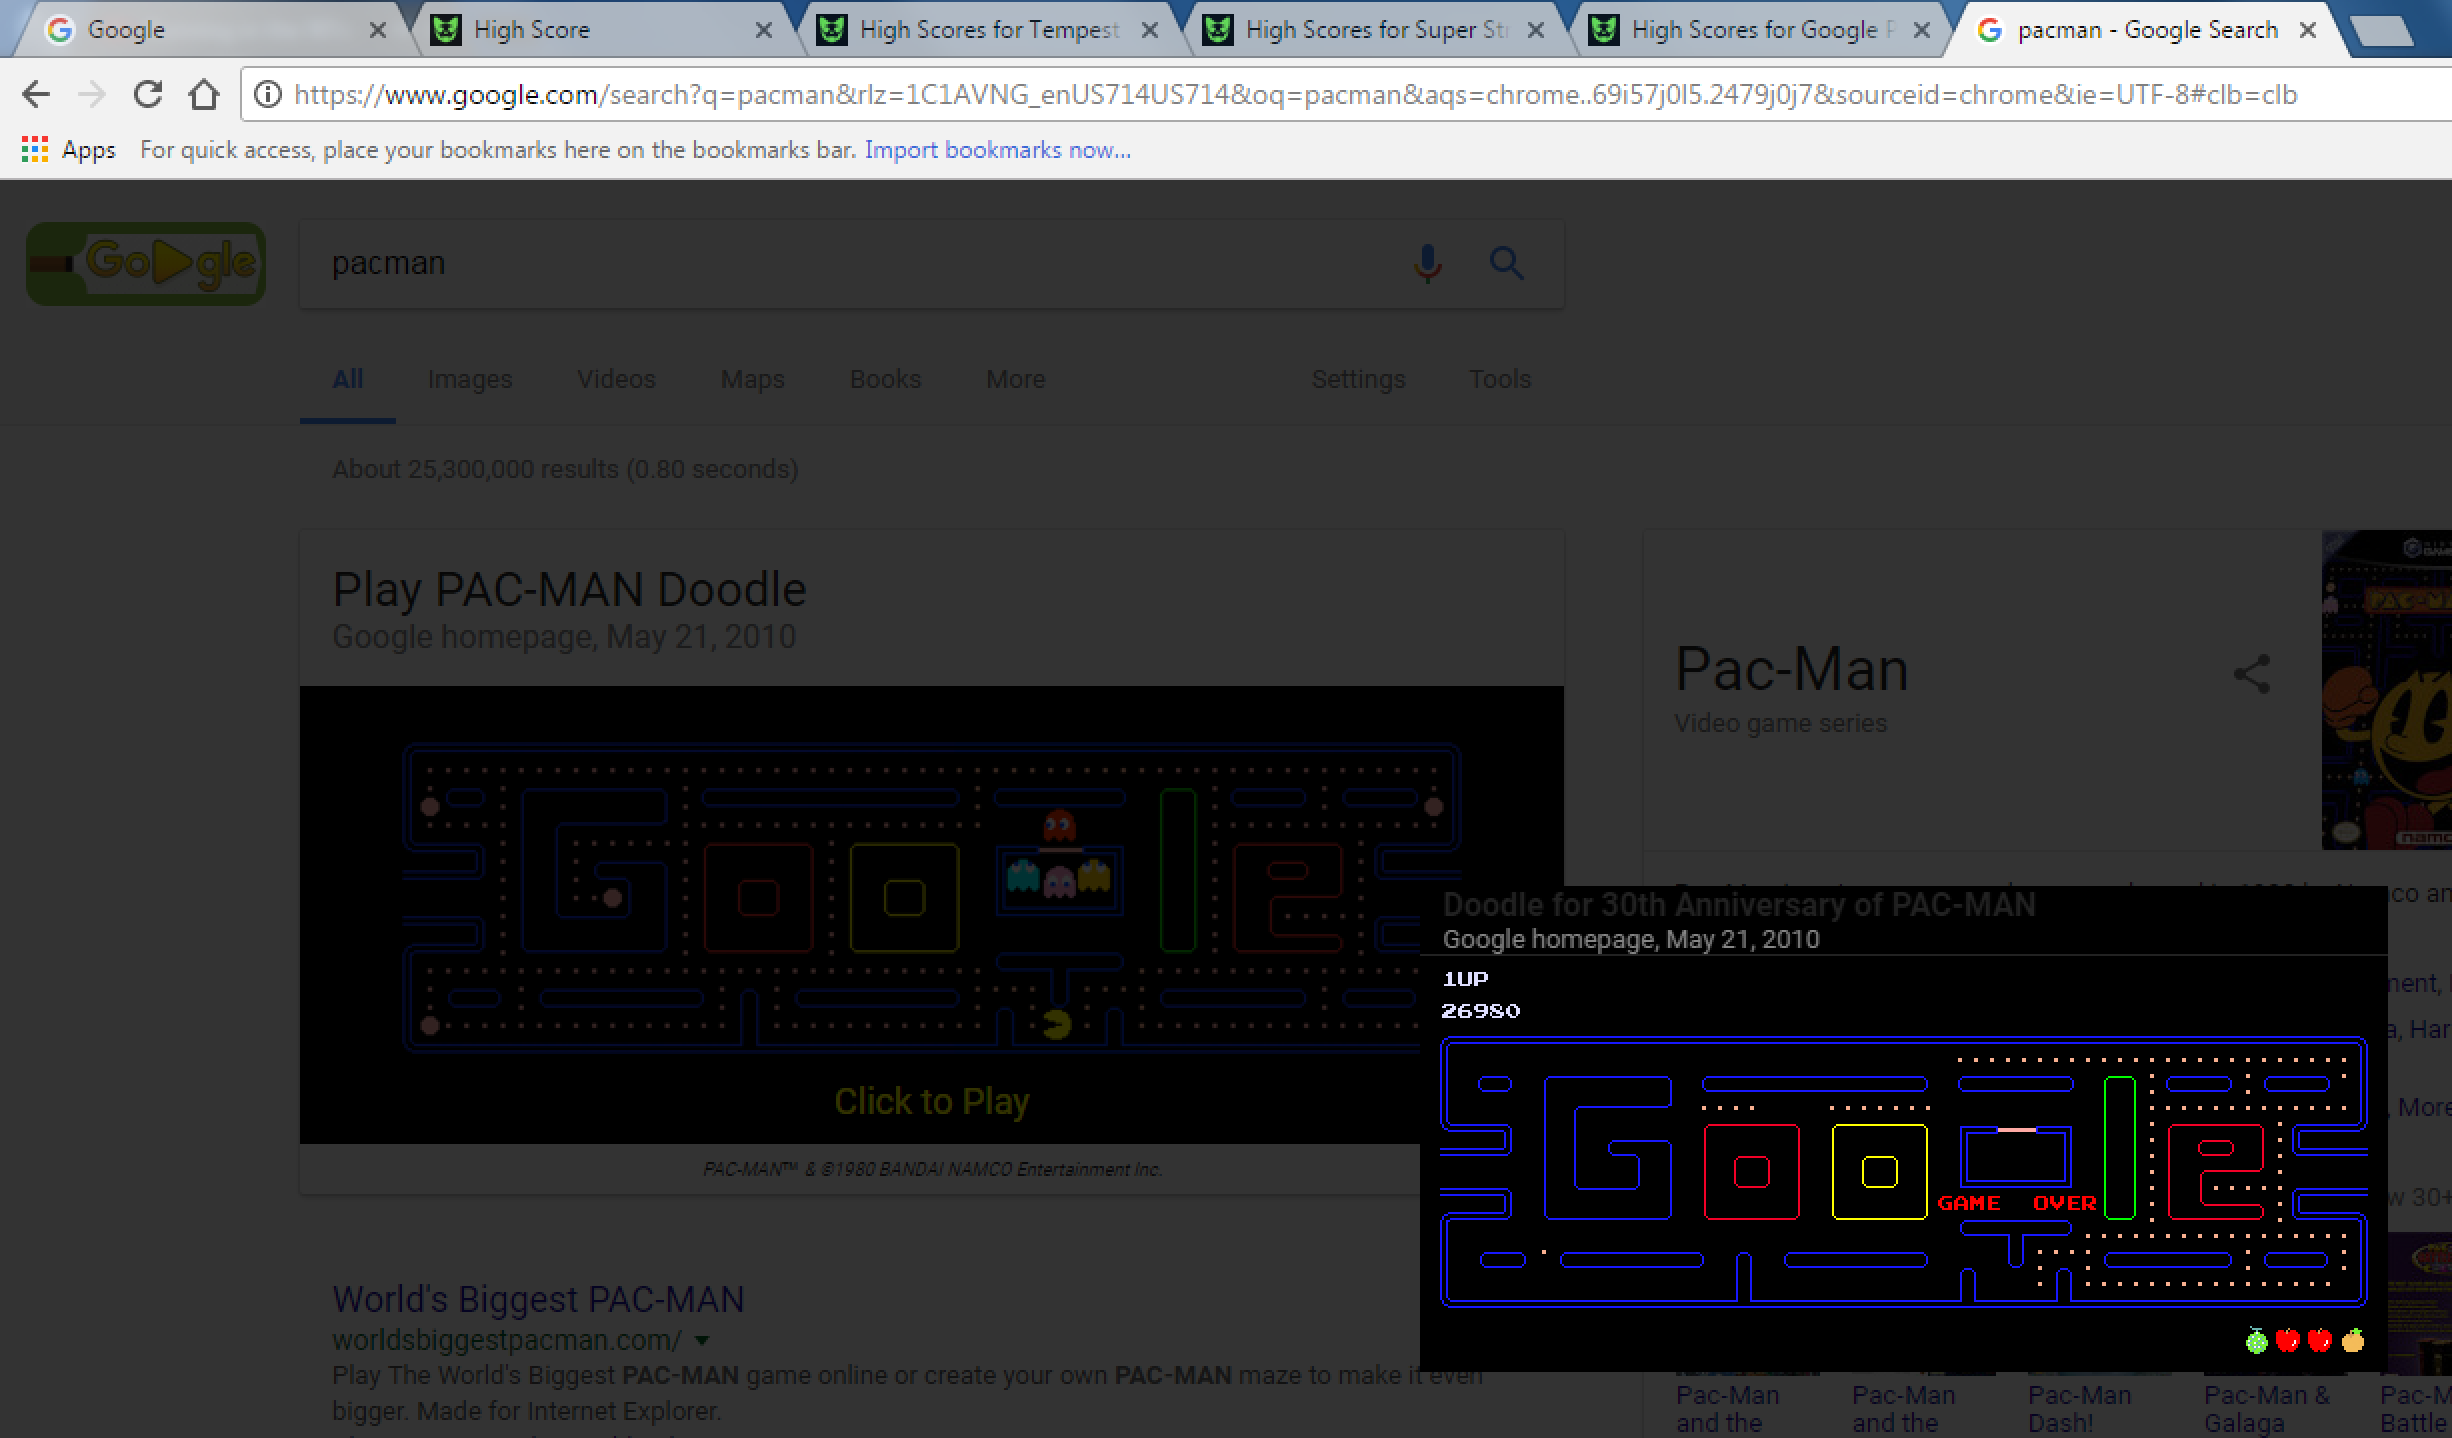 GoldWolf: Google Pac-Man (Web) 26,980 points on 2017-06-13 20:15:31